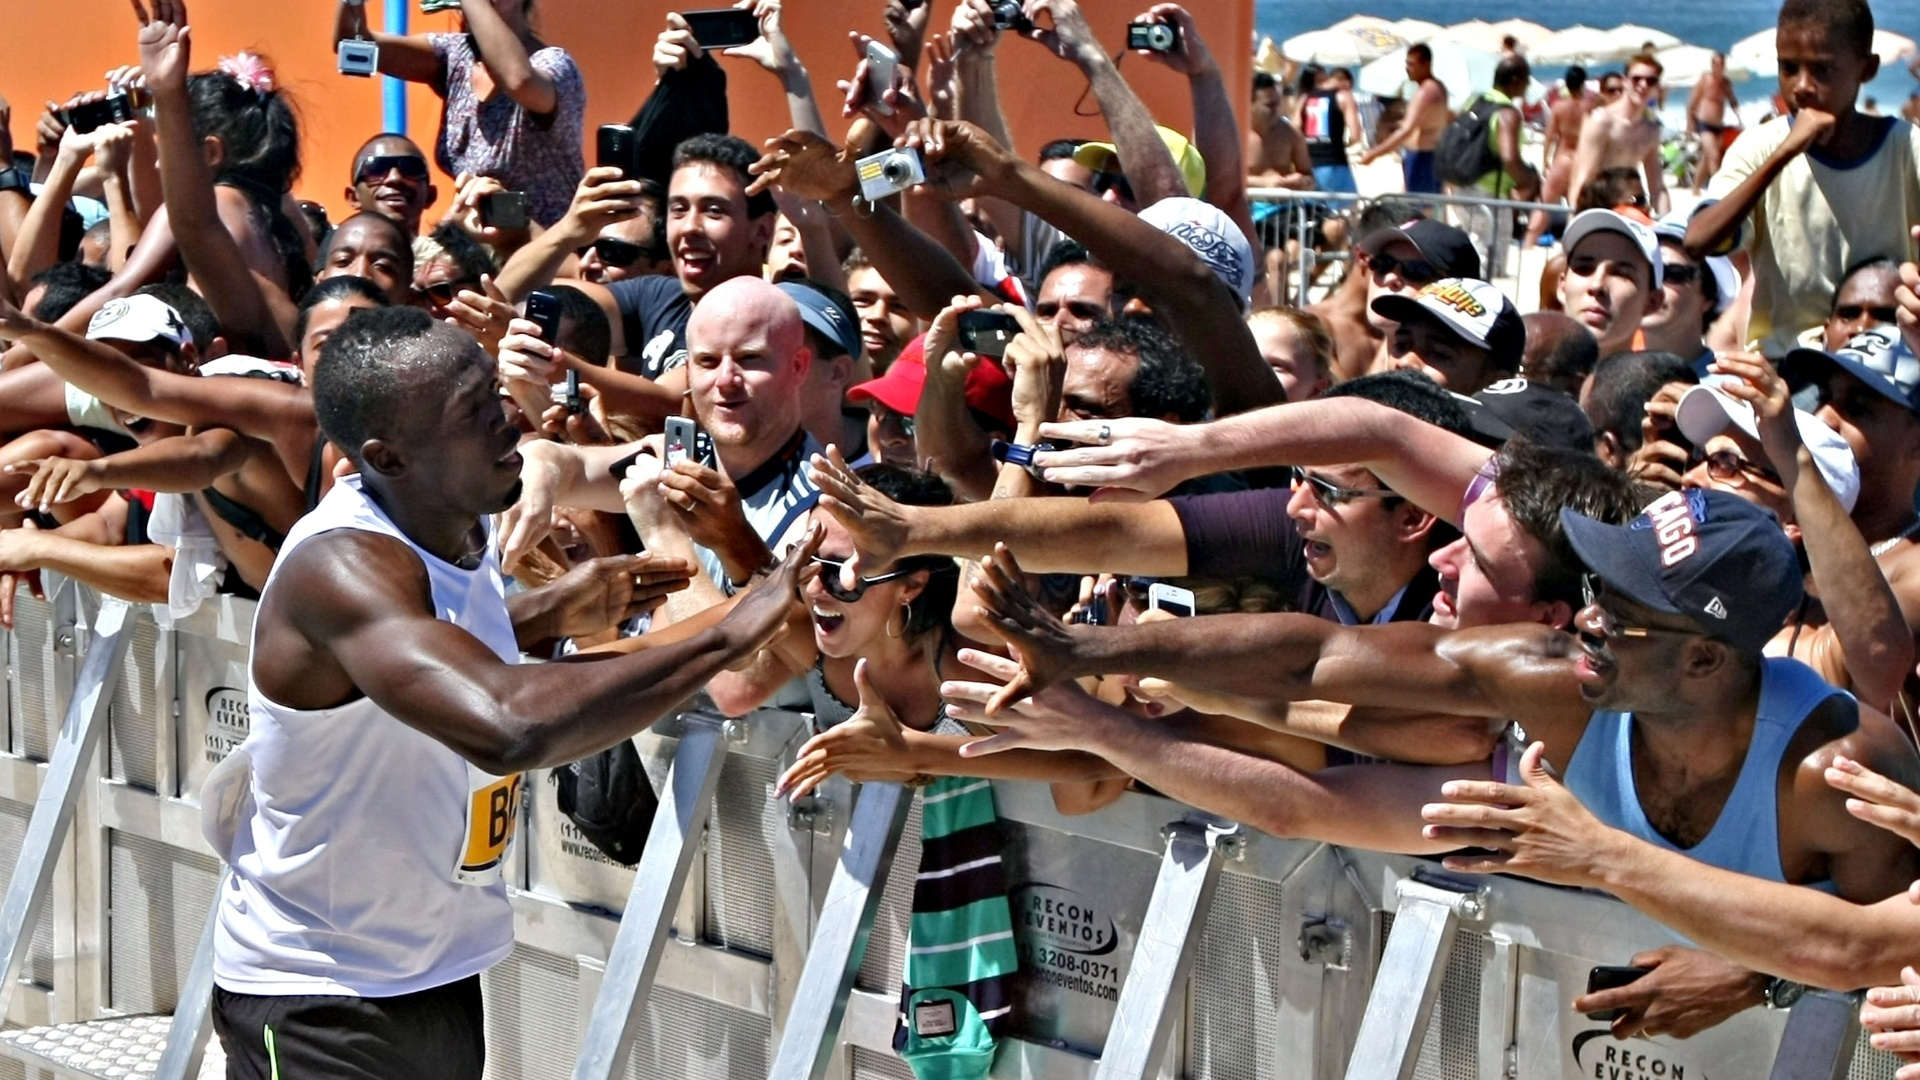 31.mar.2013 - Usain Bolt interage com os fs aps vencer desafio na praia de Copacabana